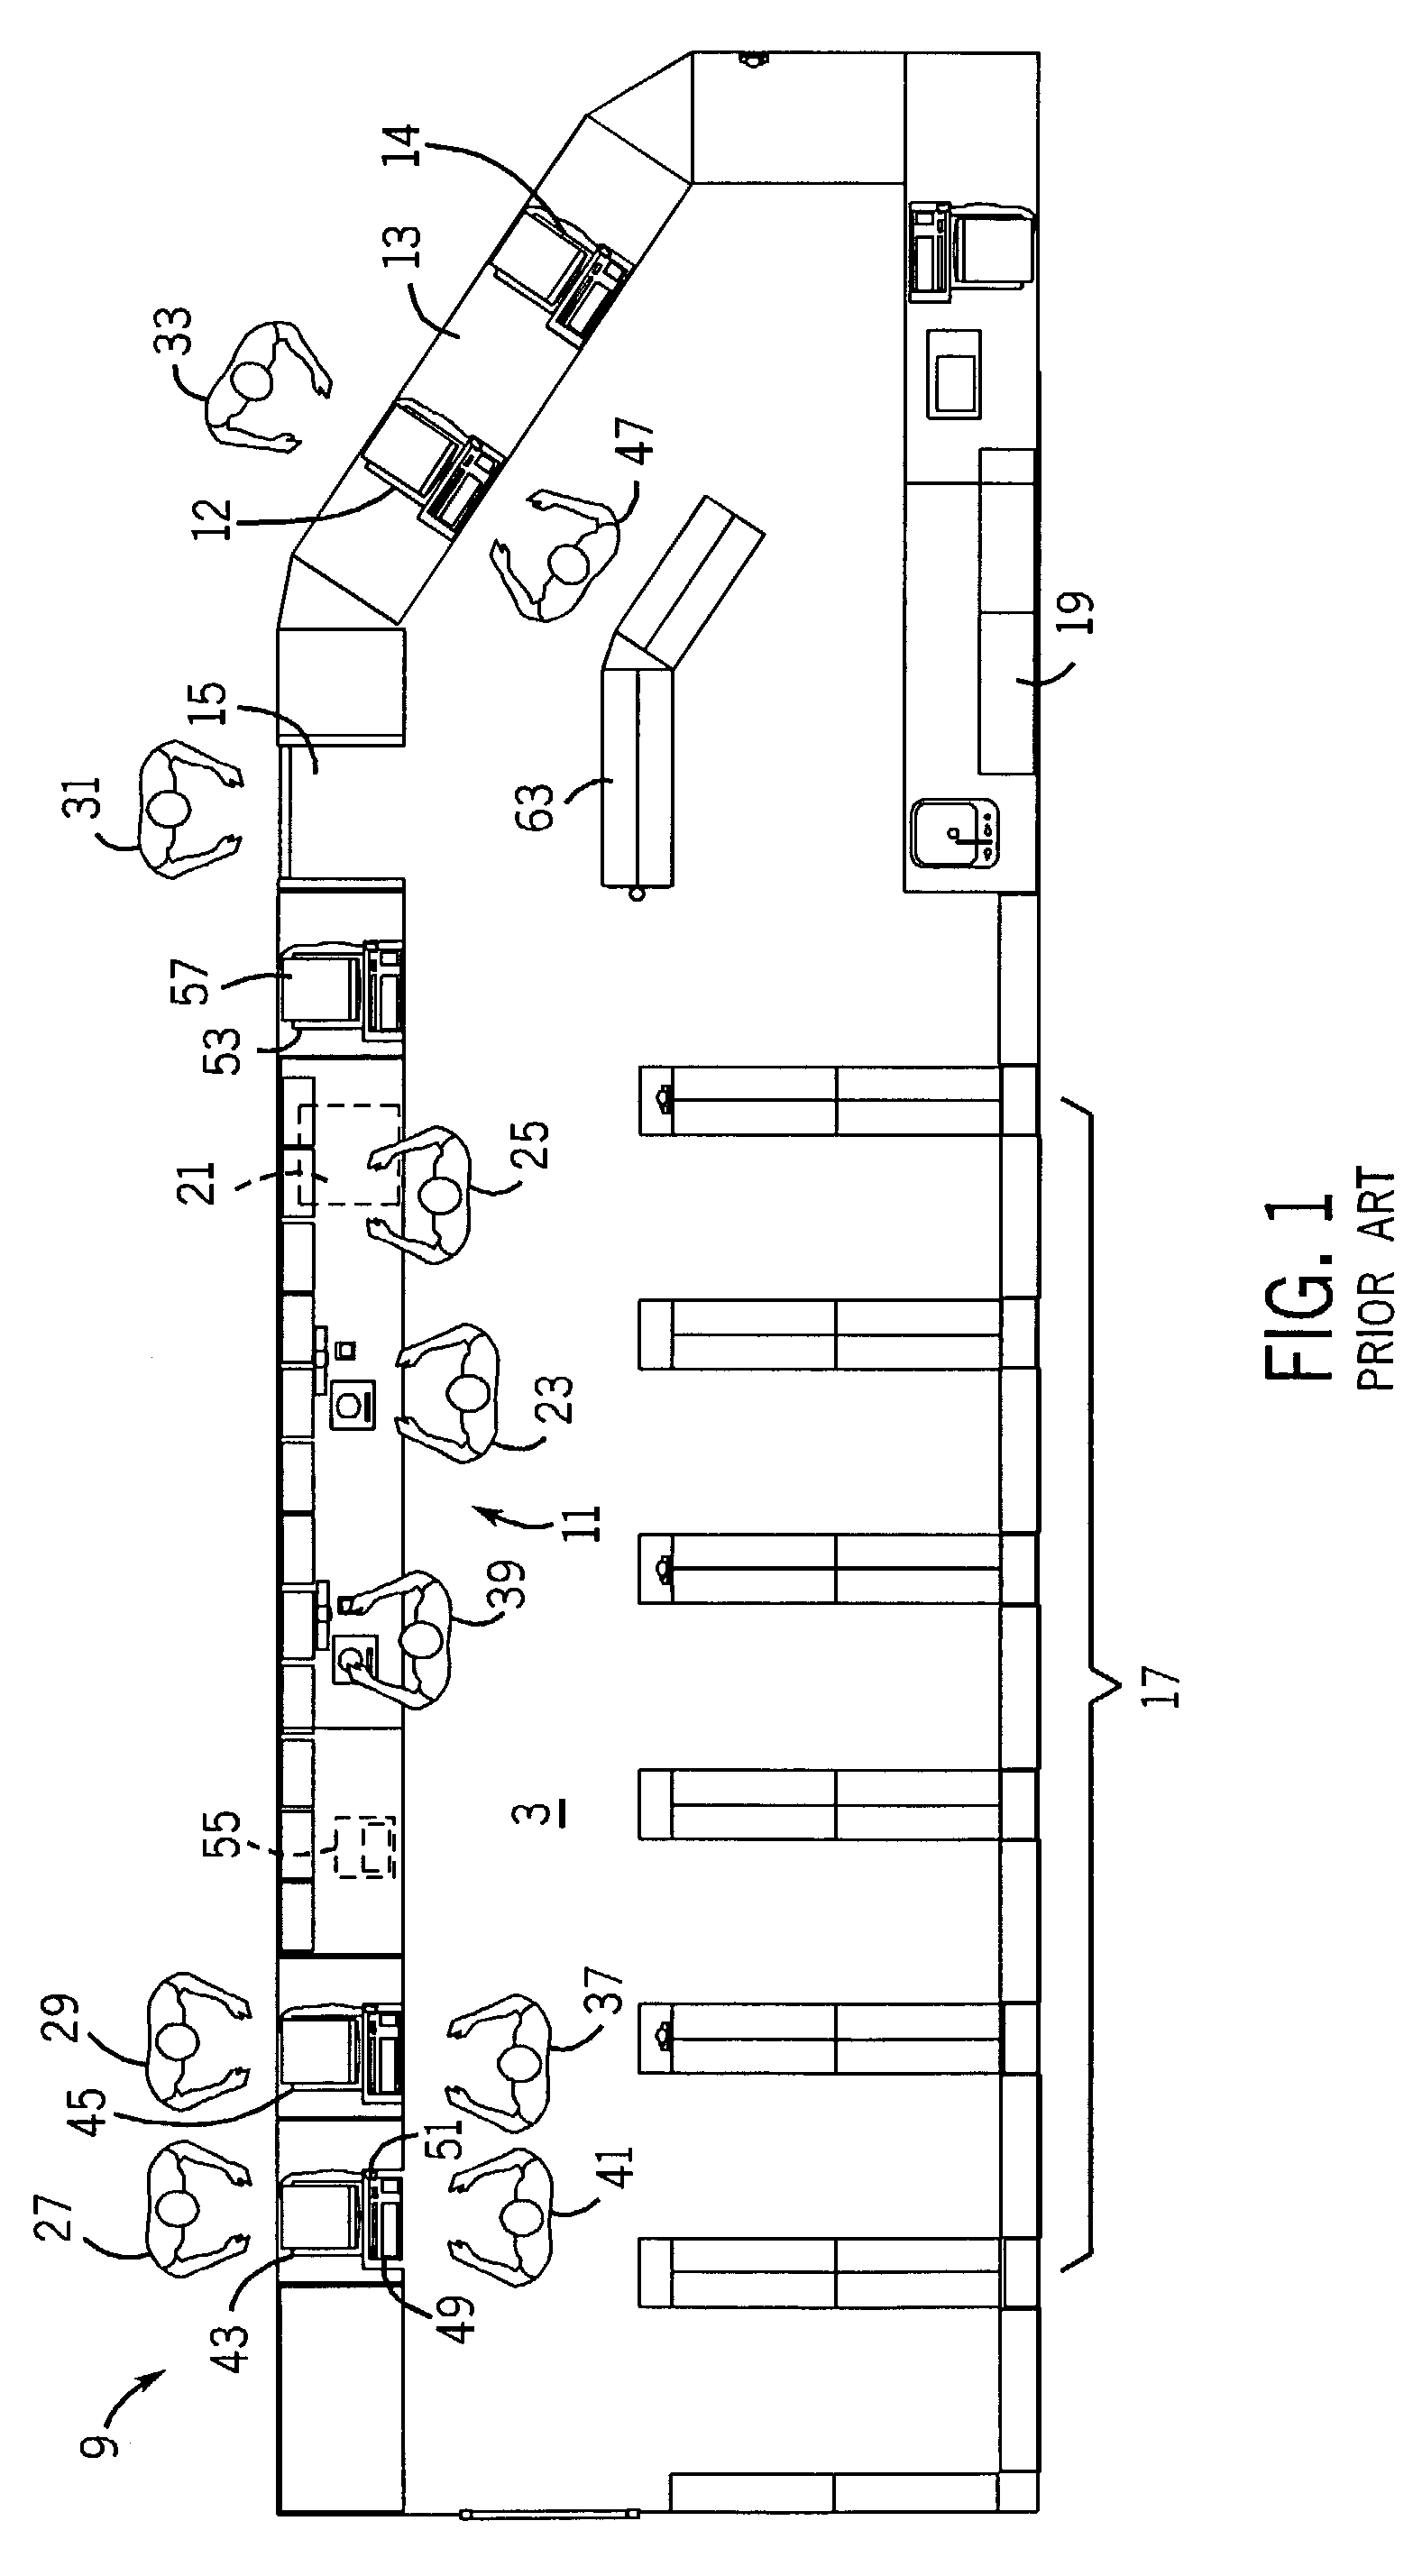 Patent Us7860724 System And Method For Management Of